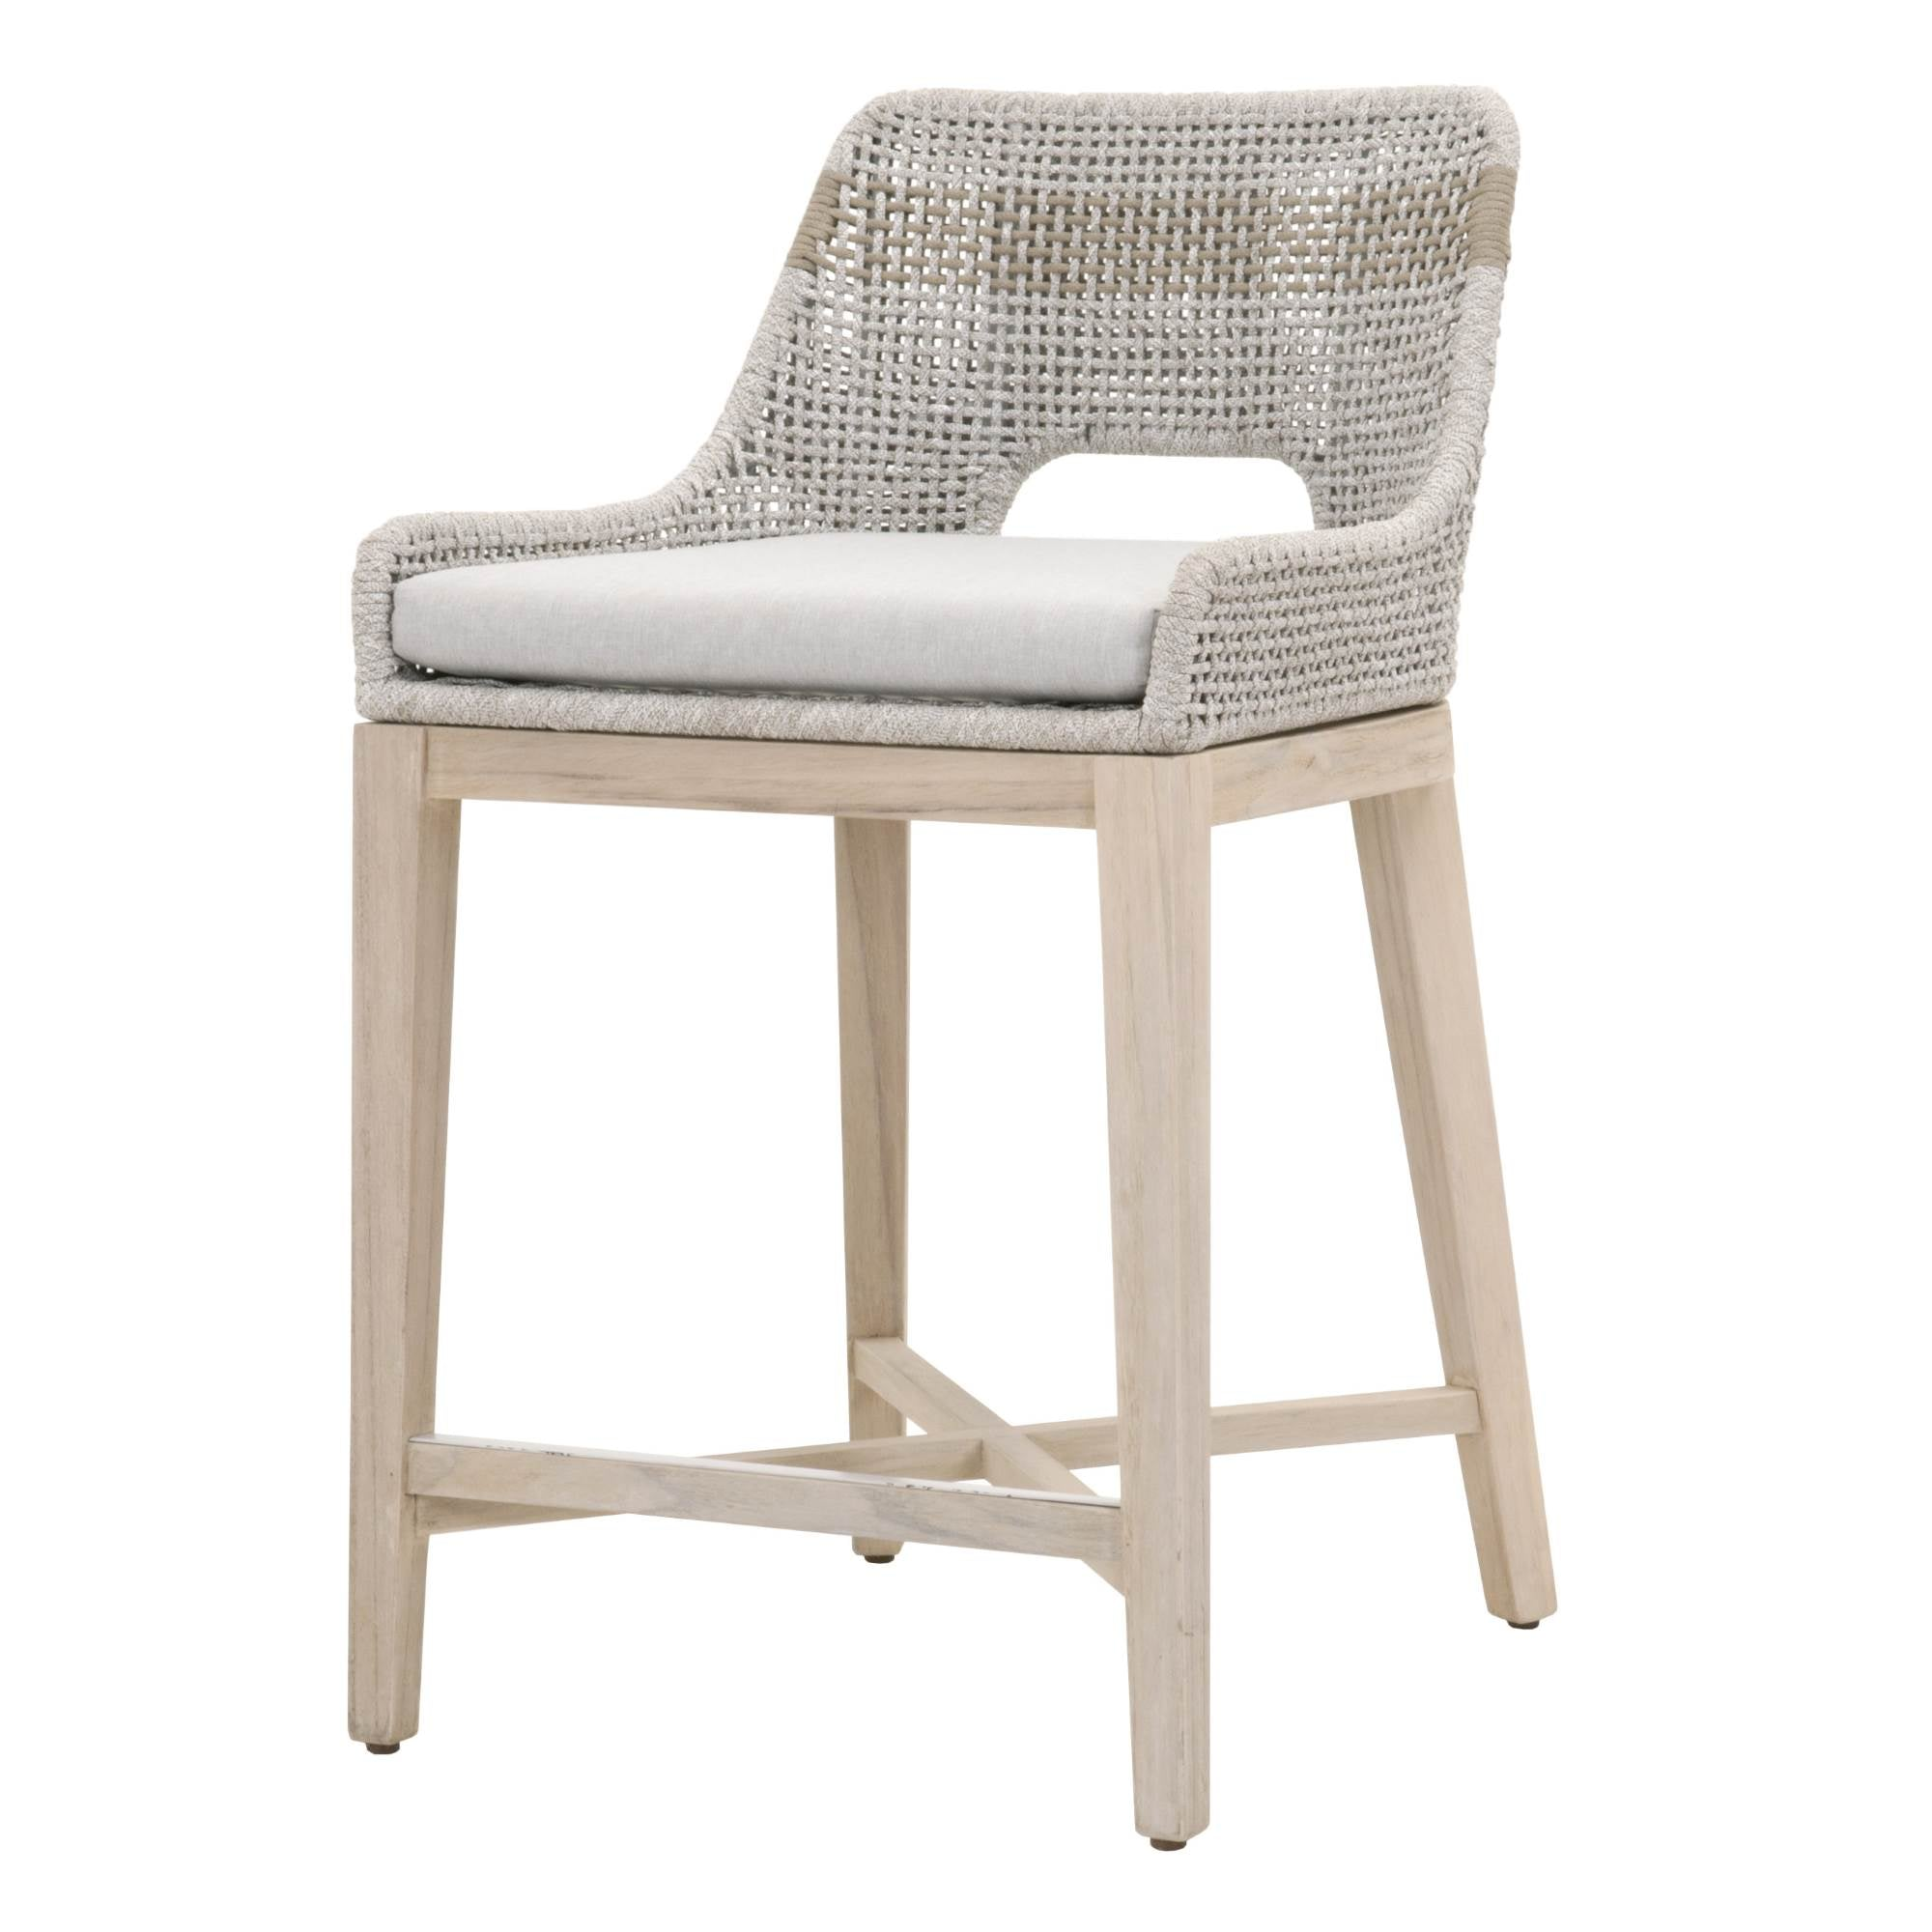 Nash Outdoor Stool